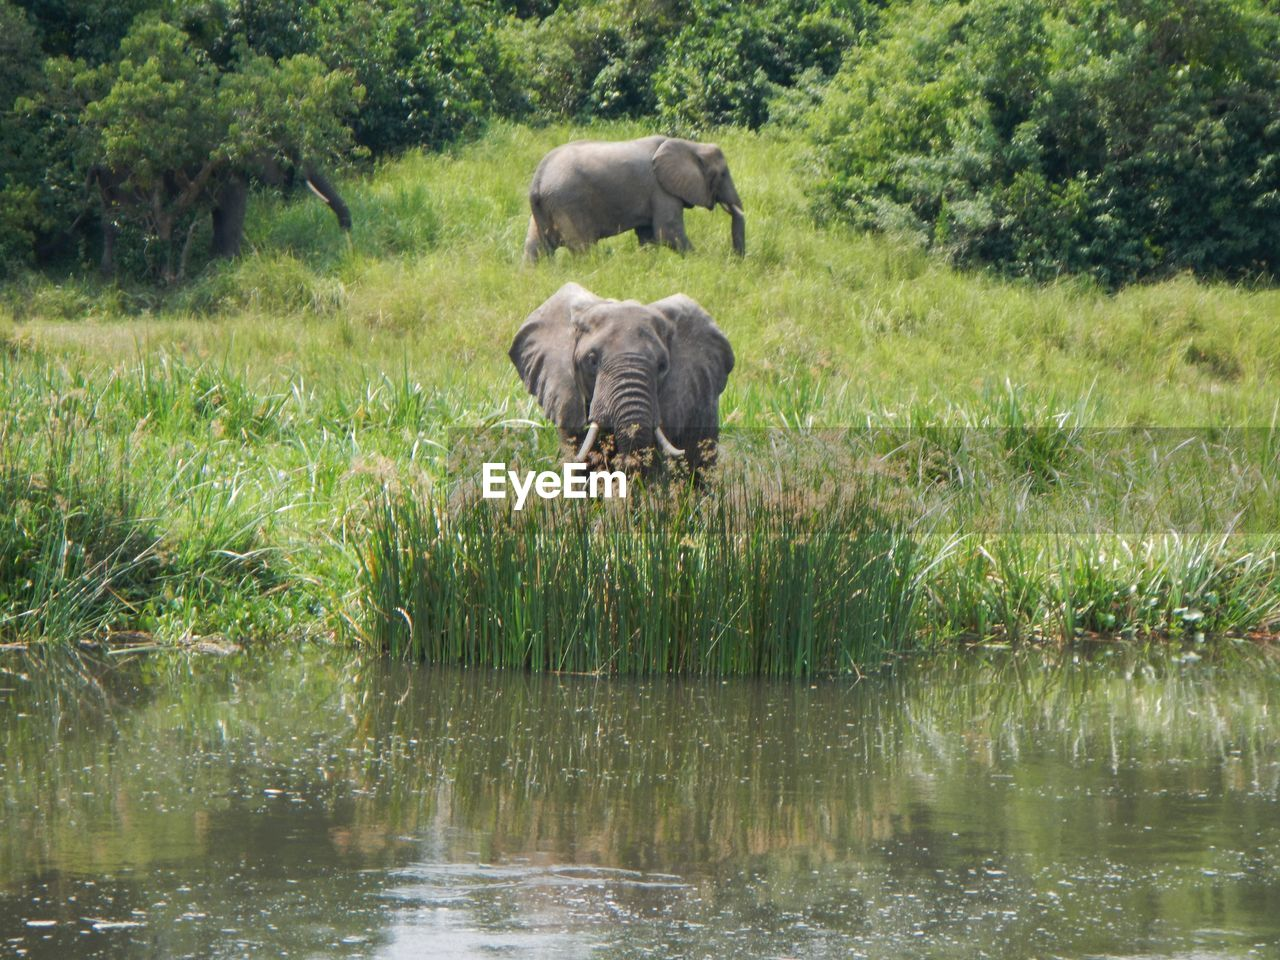 animal themes, animal, animals in the wild, mammal, animal wildlife, plant, grass, elephant, water, no people, nature, one animal, tree, vertebrate, day, african elephant, green color, outdoors, herbivorous, animal trunk, drinking